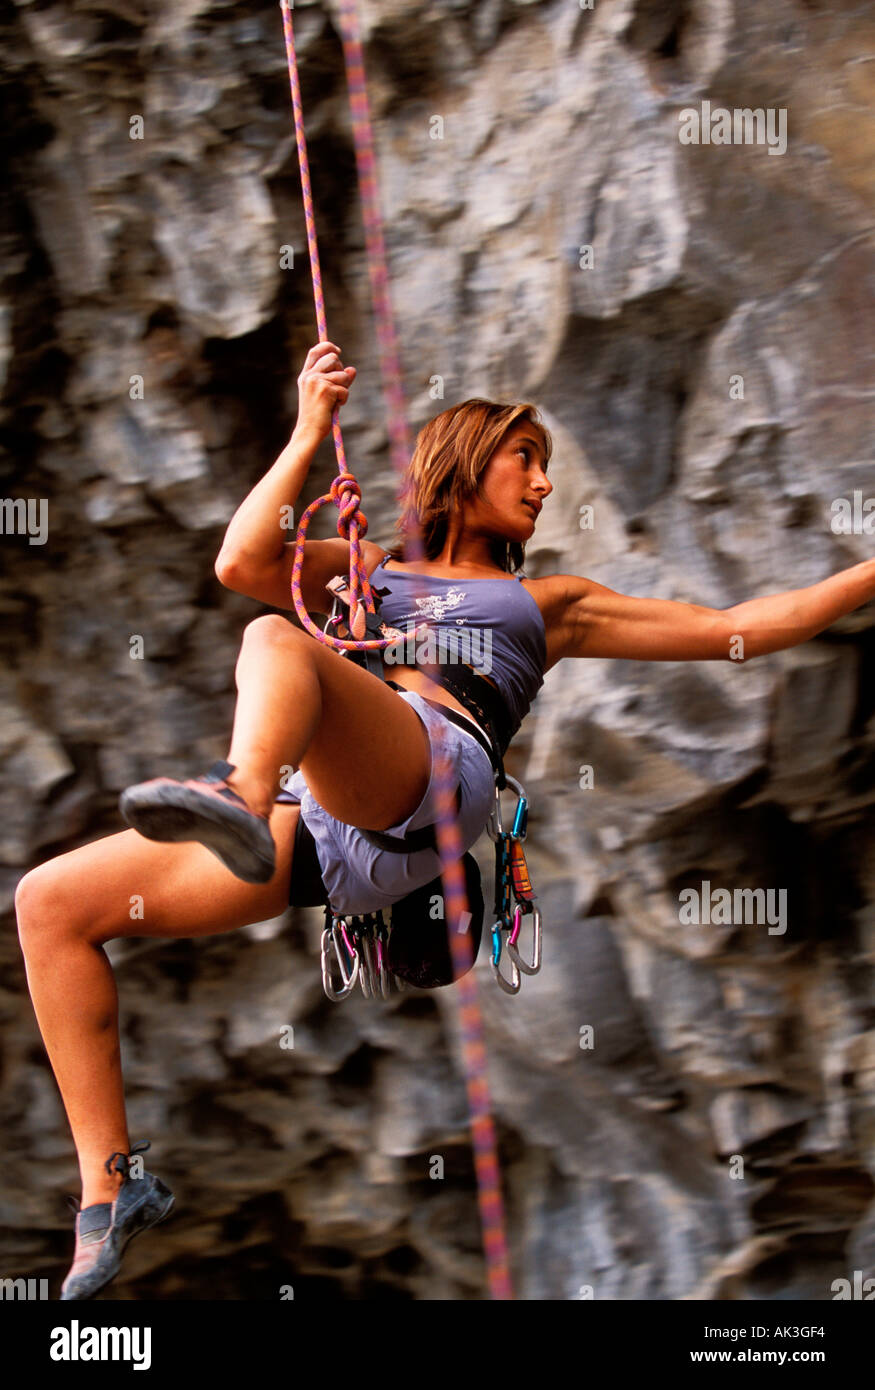 A young woman climber swings on the end of a rope to a differenct location on a basalt wall - Stock Image